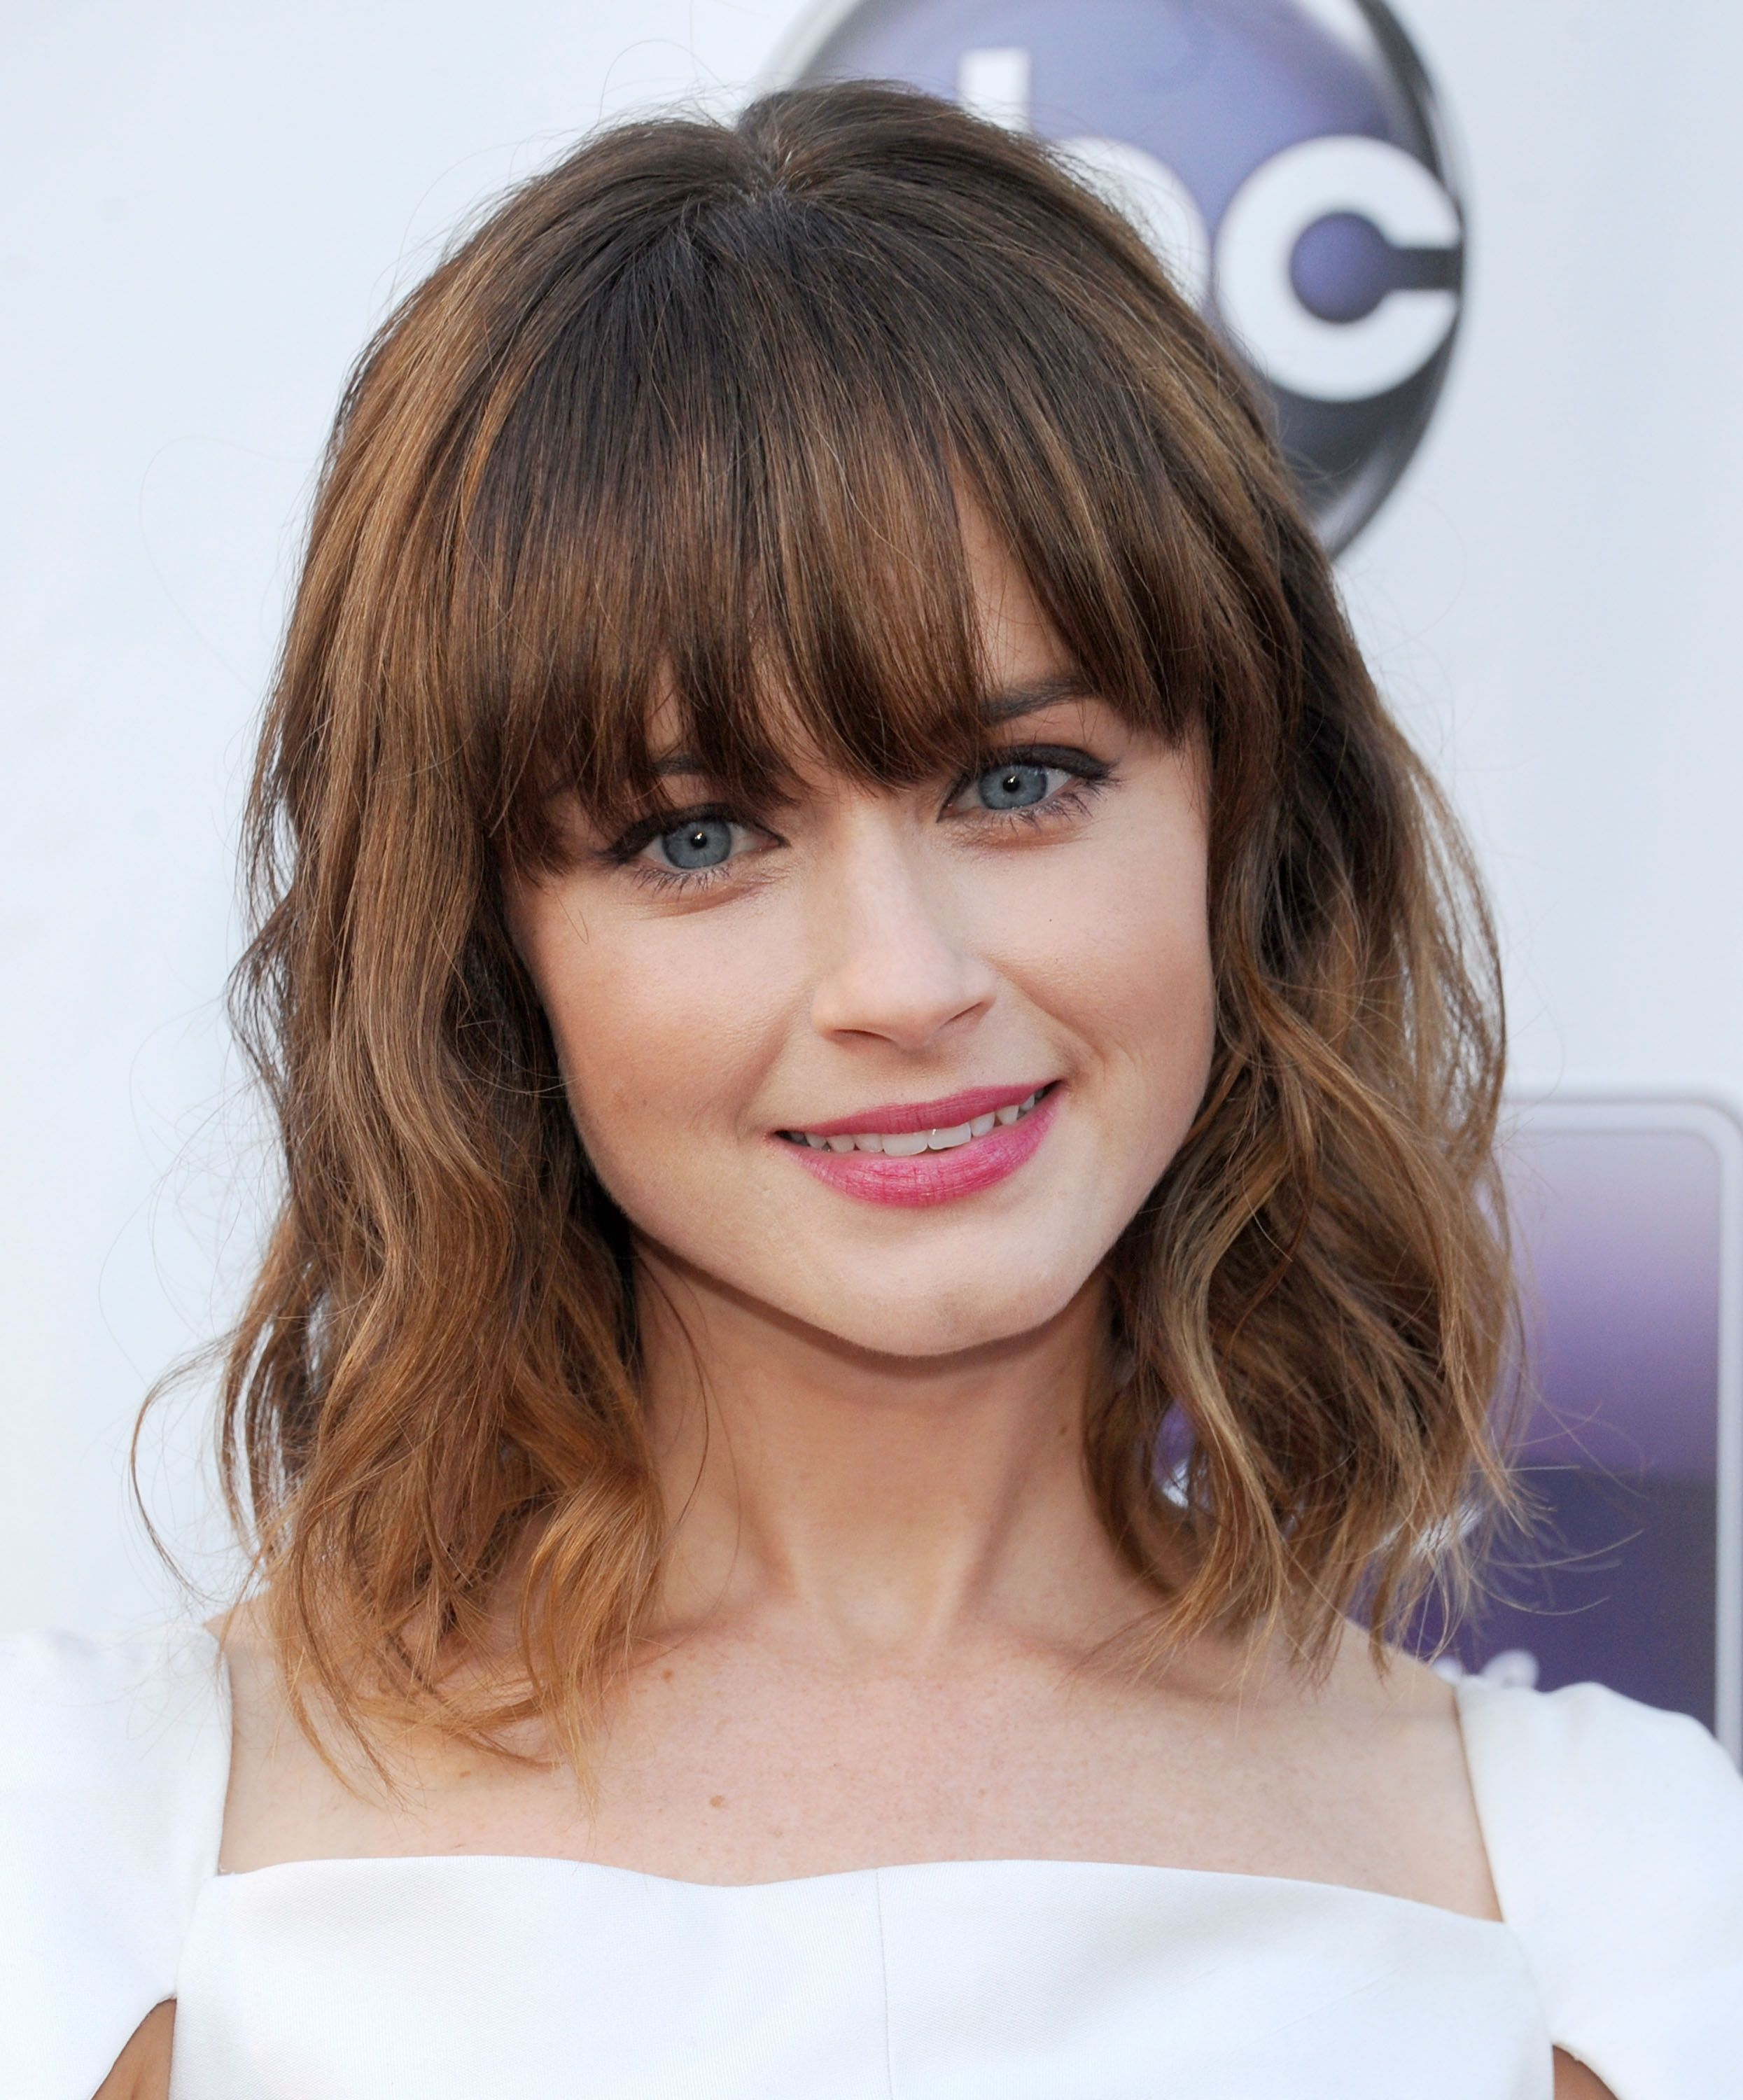 Haircuts Hairstyles 35 Best Hairstyles With Bangs Photos Of Celebrity Haircuts With